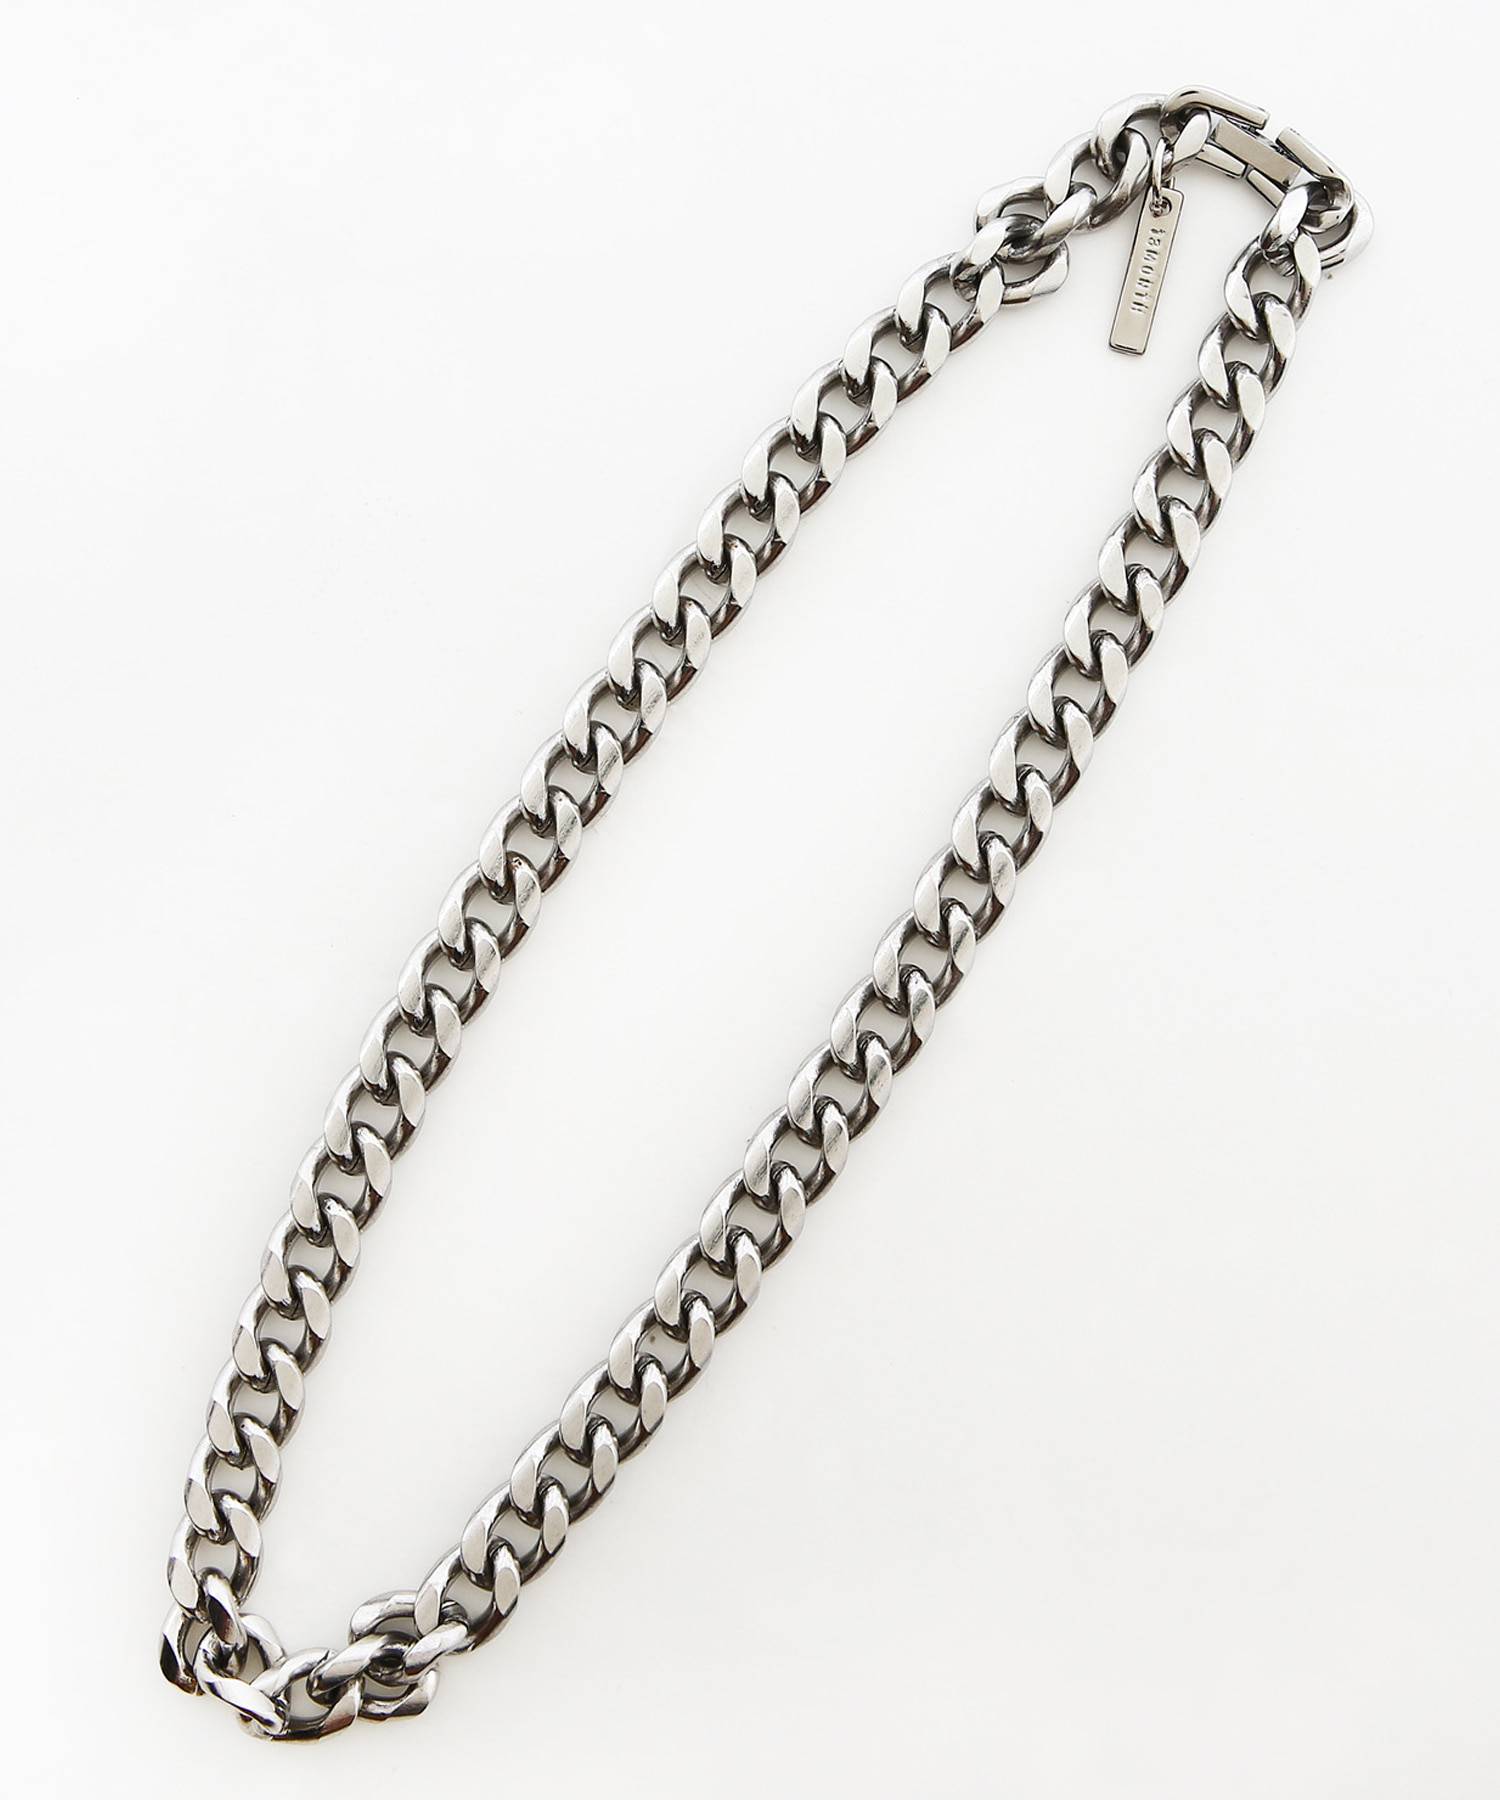 [써틴먼스] HEAVY CHAIN NECKLACE (SILVER)